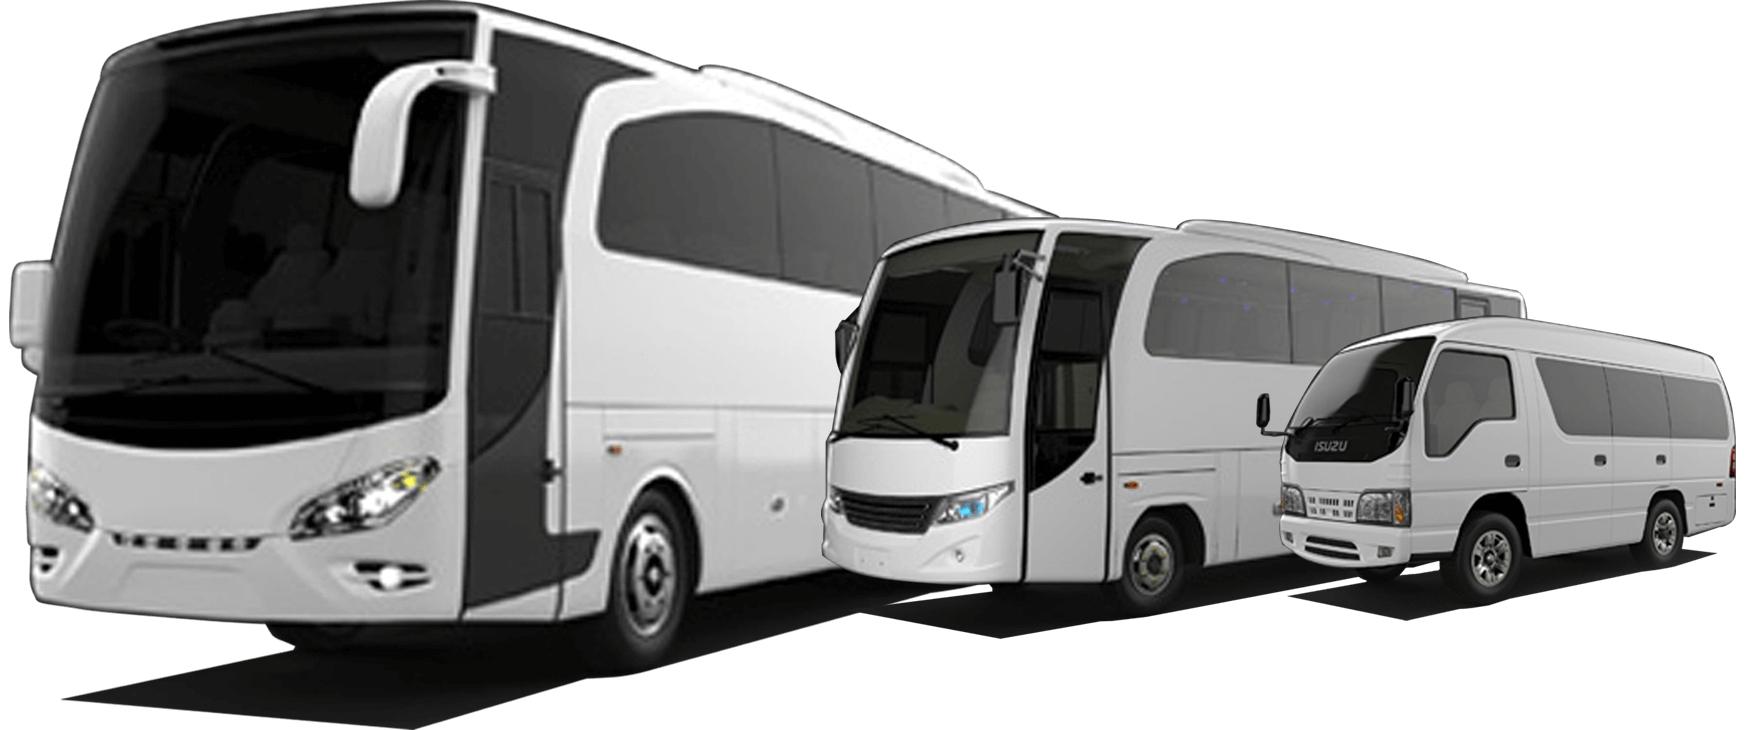 St. Louis niche charter bus company for sale